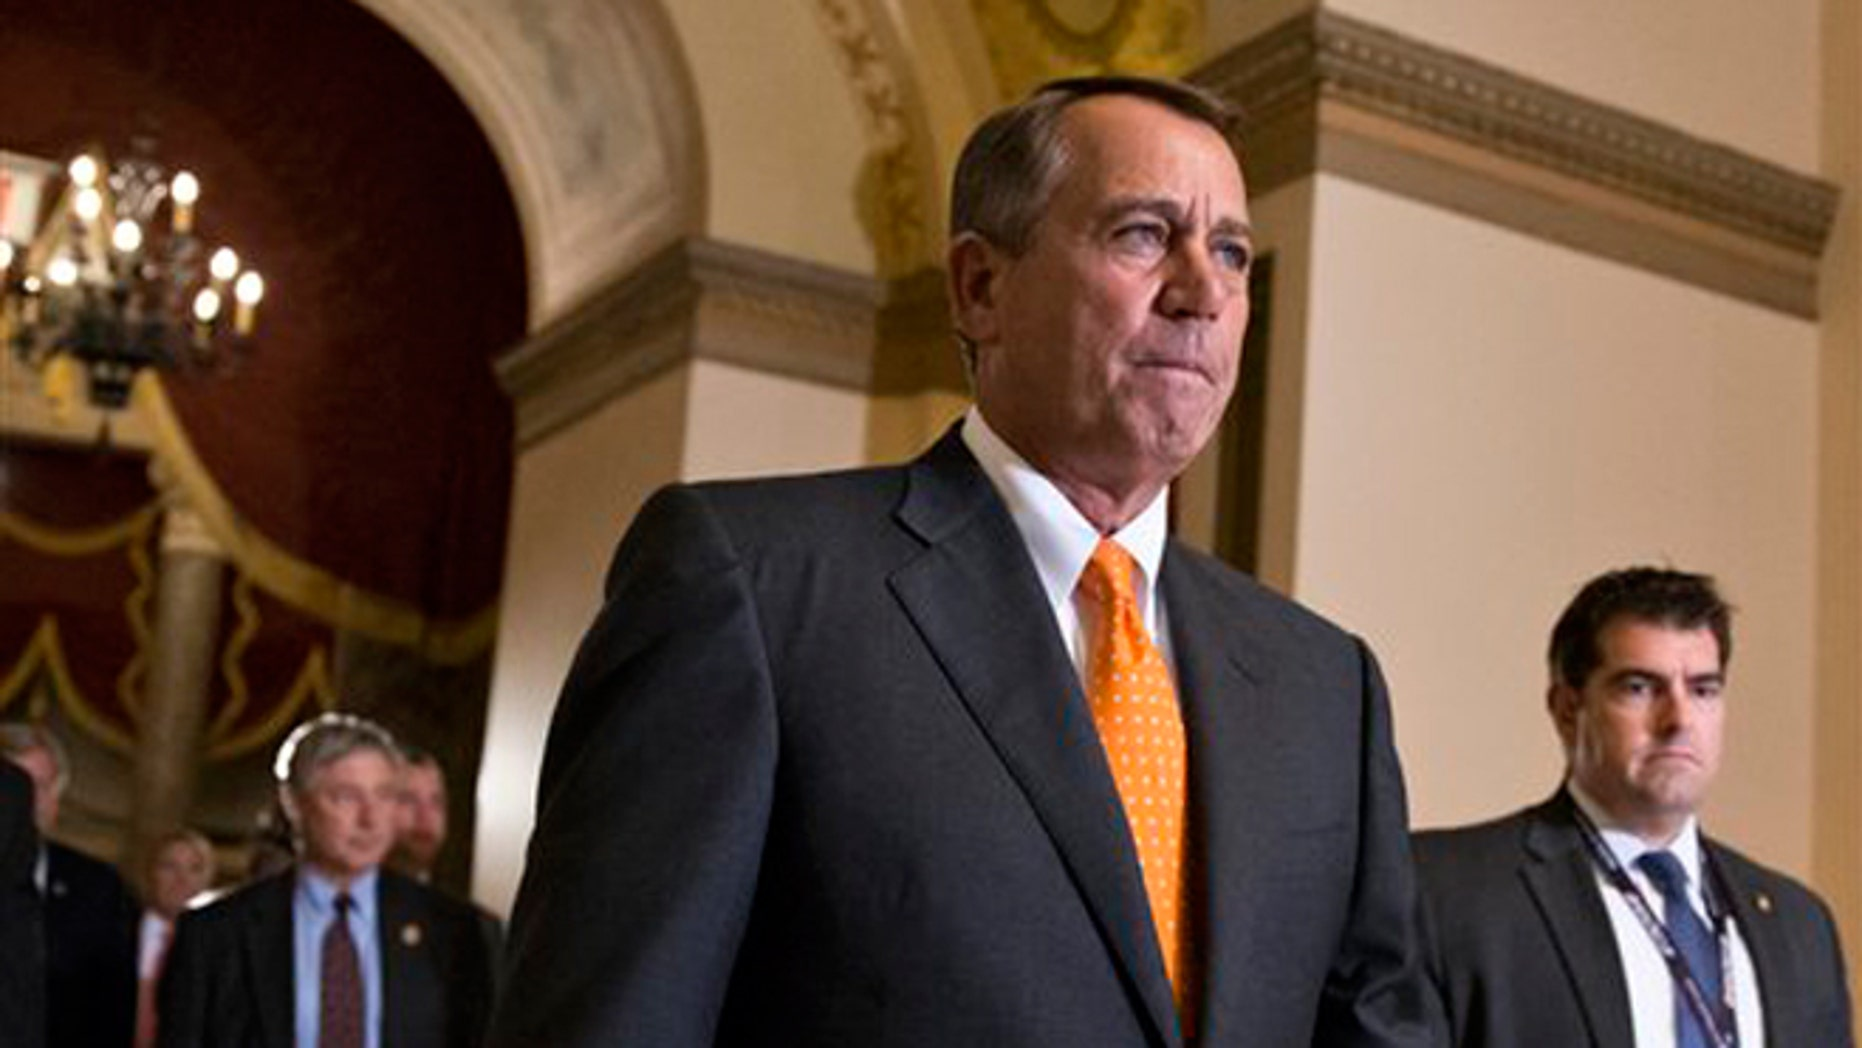 Oct. 16, 2013: Speaker of the House John Boehner, (R-Ohio), walks to the chamber for the vote on a Senate-passed bill that would avert a threatened Treasury default and reopen the government after a partial, 16-day shutdown, at the Capitol in Washington.